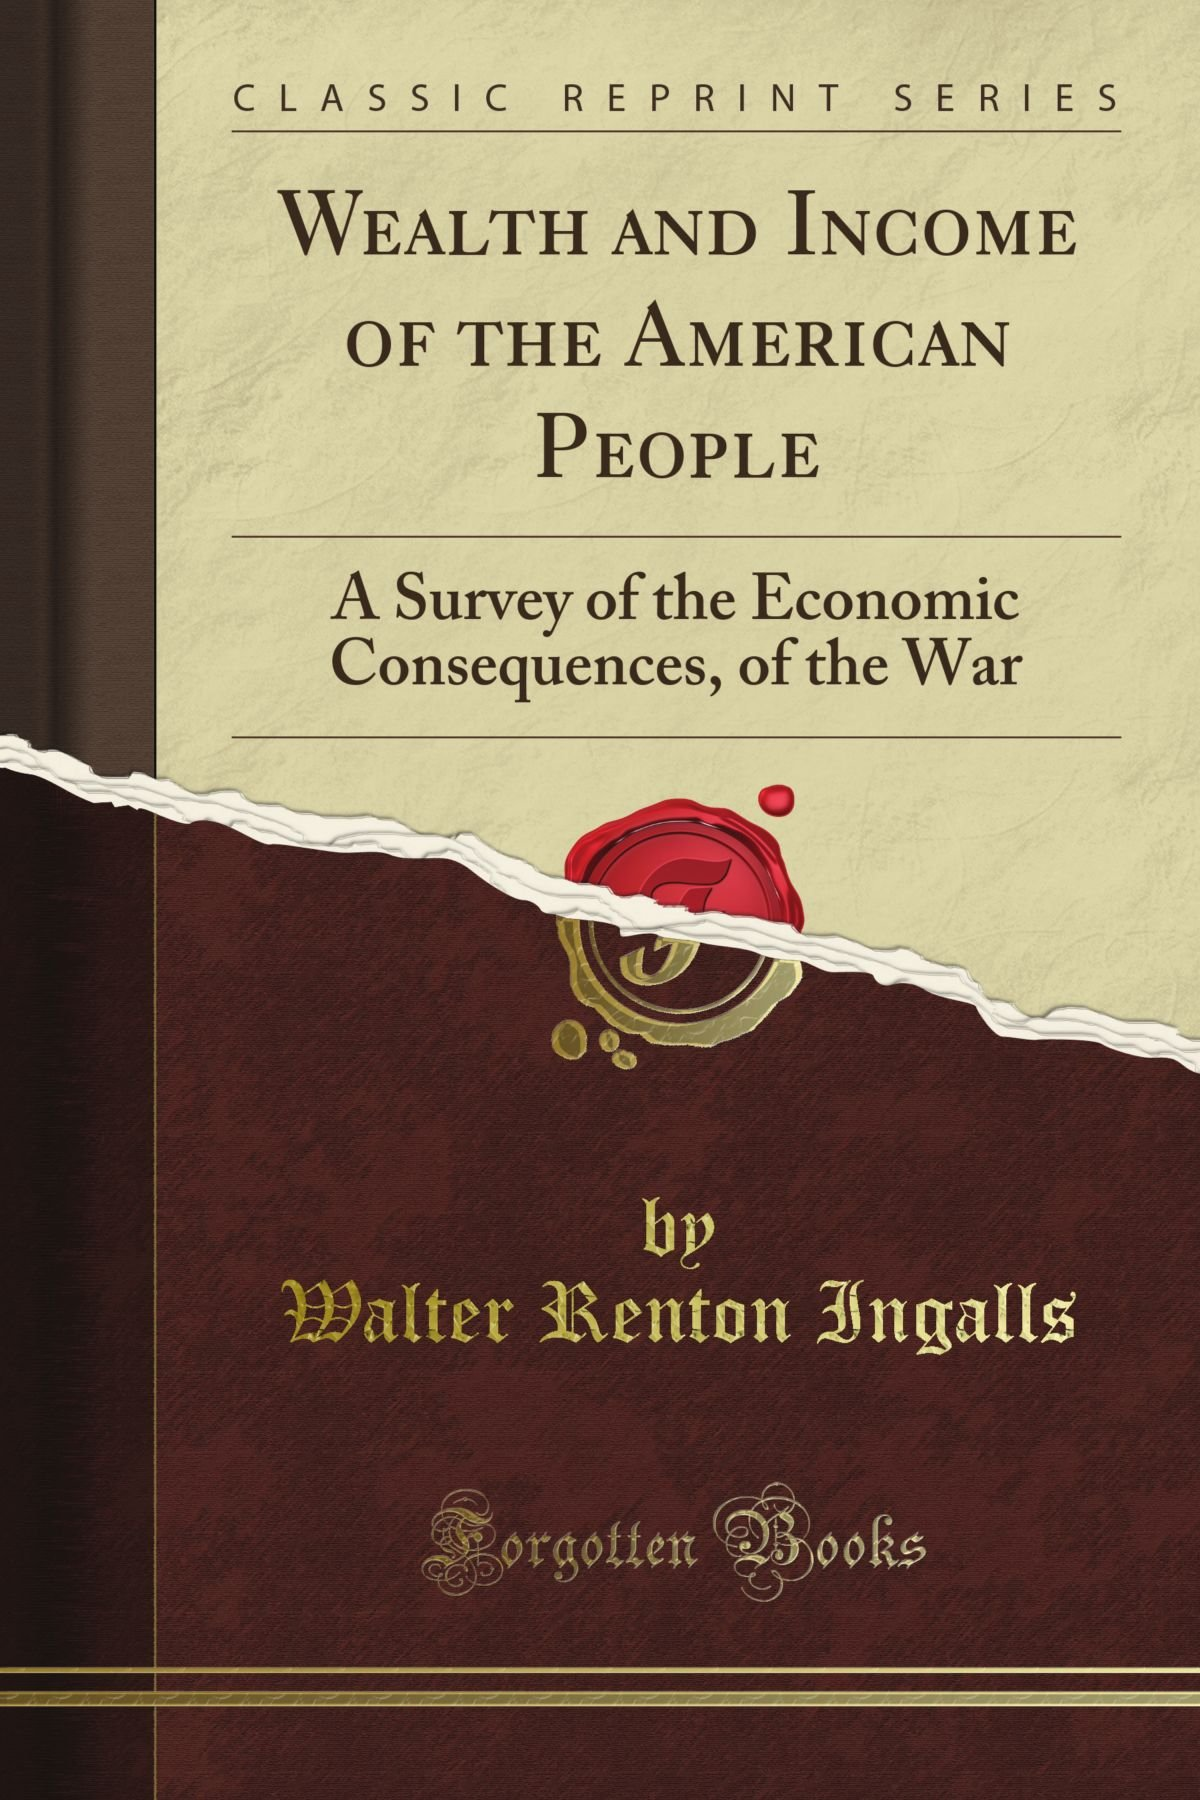 Download Wealth and Income of the American People: A Survey of the Economic Consequences, of the War (Classic Reprint) ebook